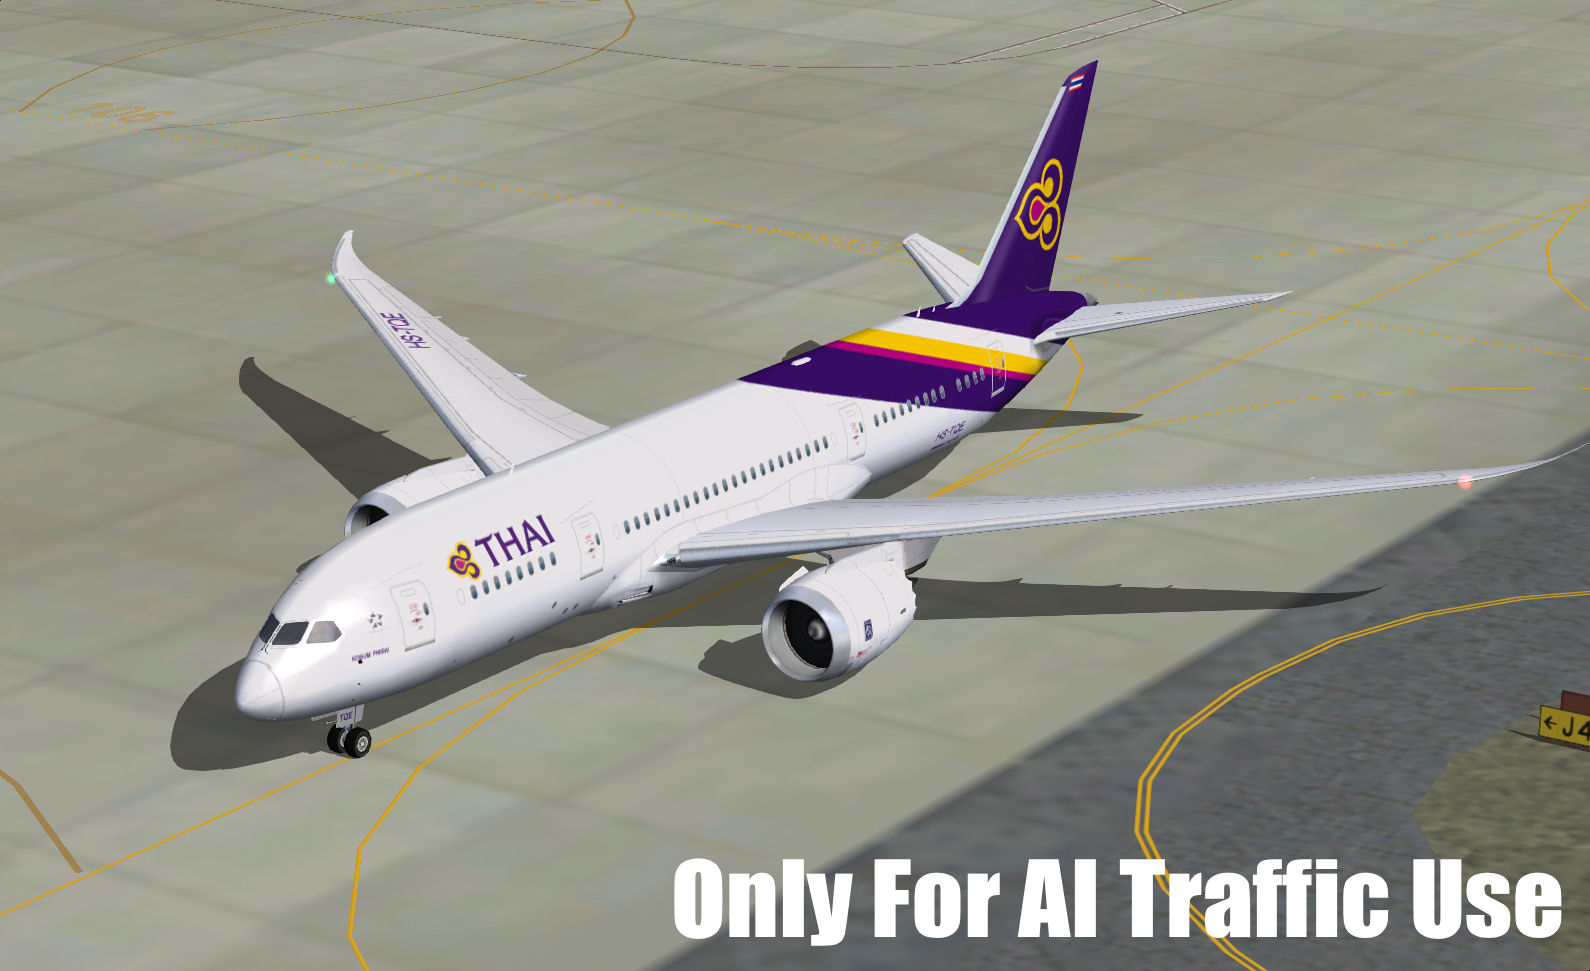 FSPXAI - BOEING 787-8 AND -9 FOR FS2004 AI-TRAFFIC